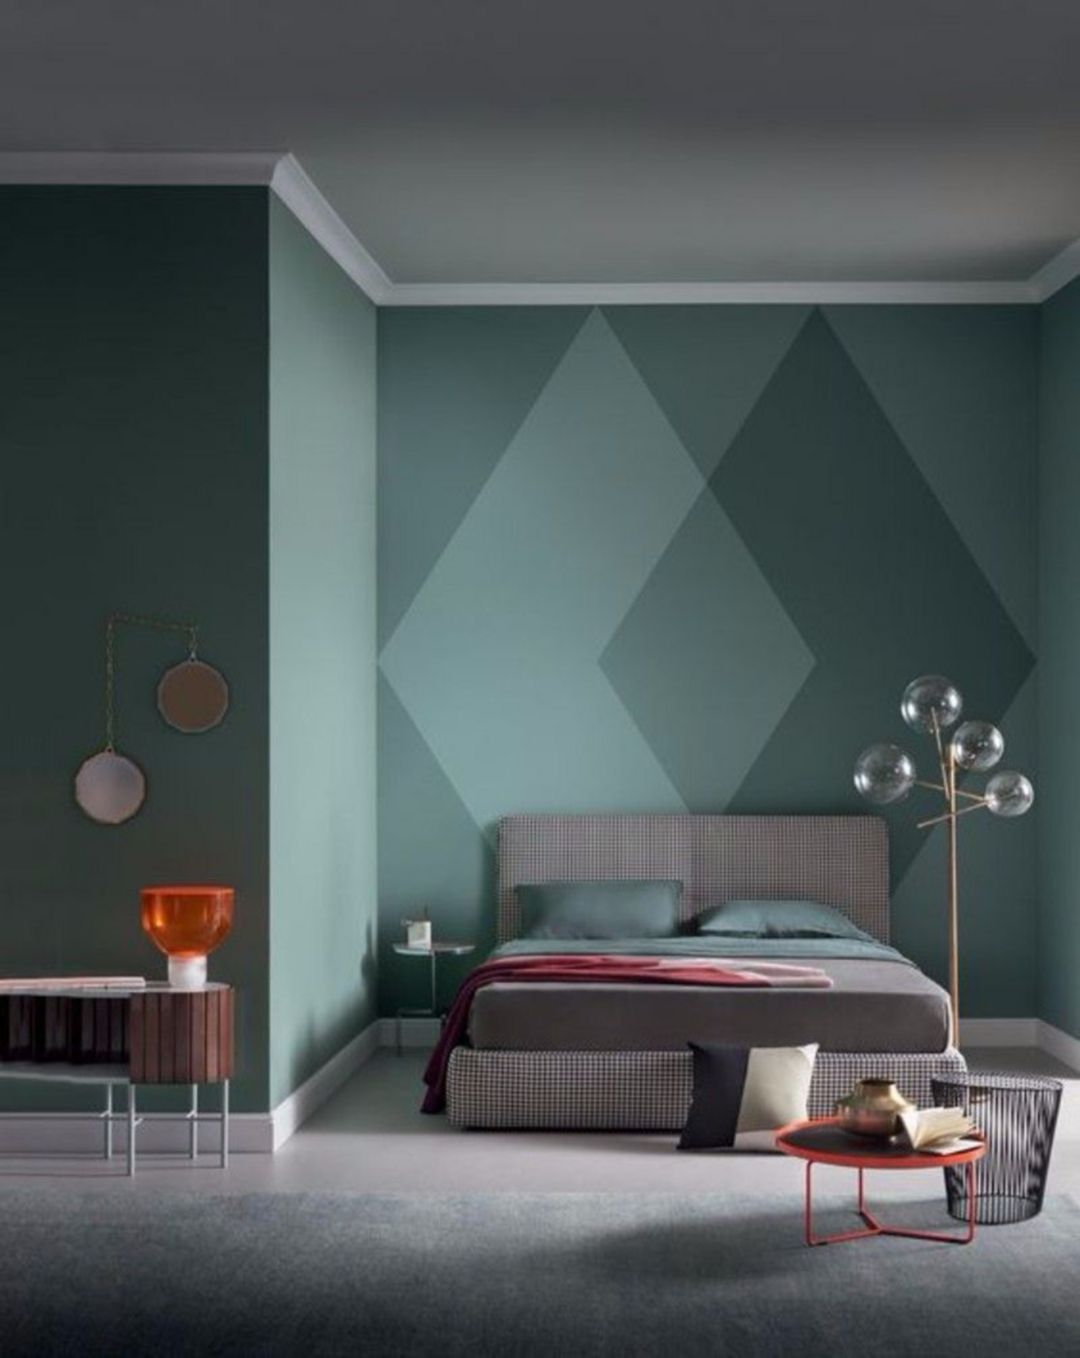 25+ Fantastic Painting Decor Ideas for Your Bedroom Wall images